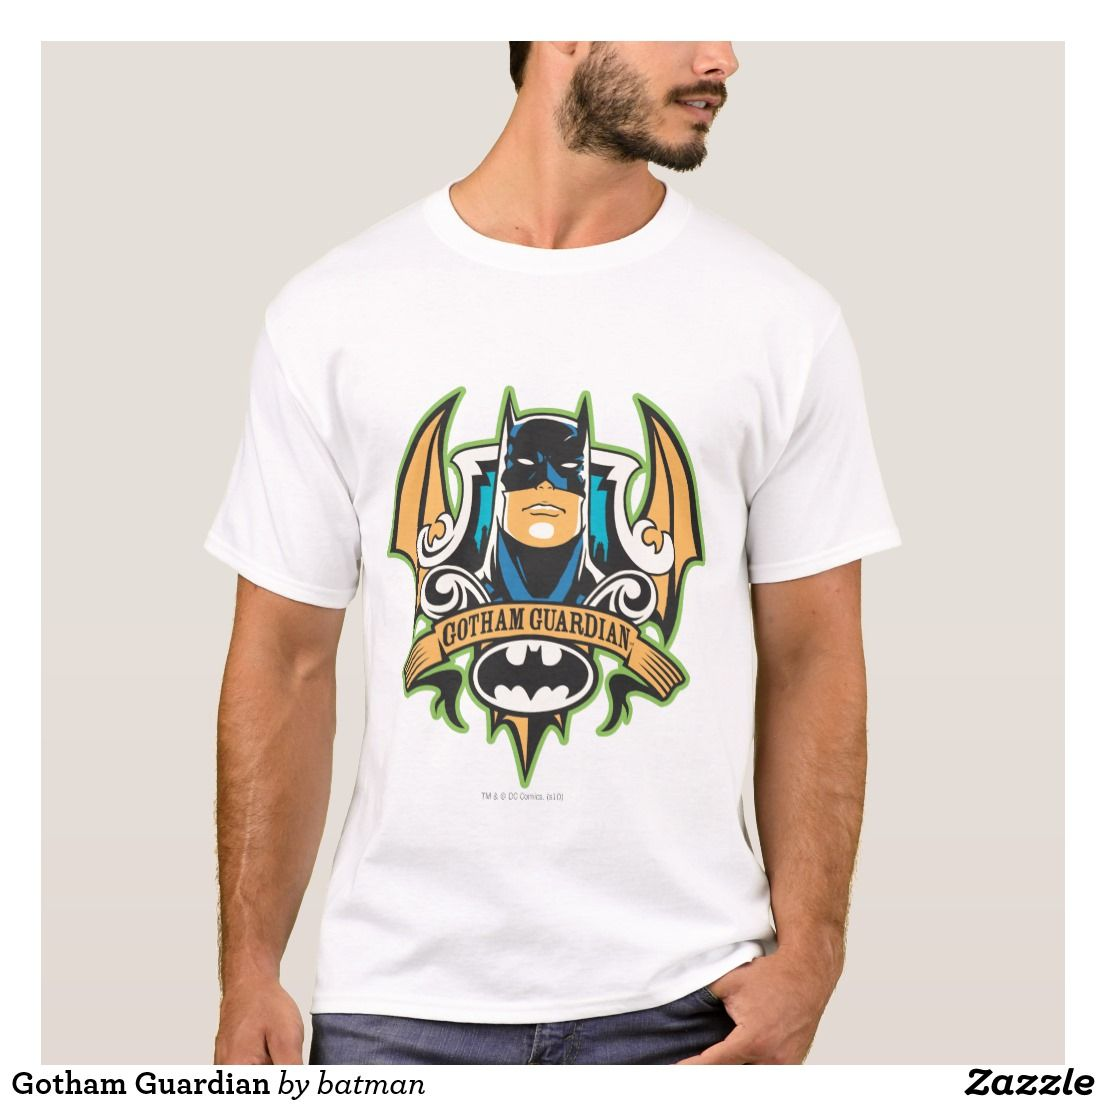 c4ff8c77 Gotham Guardian T-Shirt. Awesome Batman from DC Comics. Unique superhero  designs to personalize as a gift for yourself, friends and families.